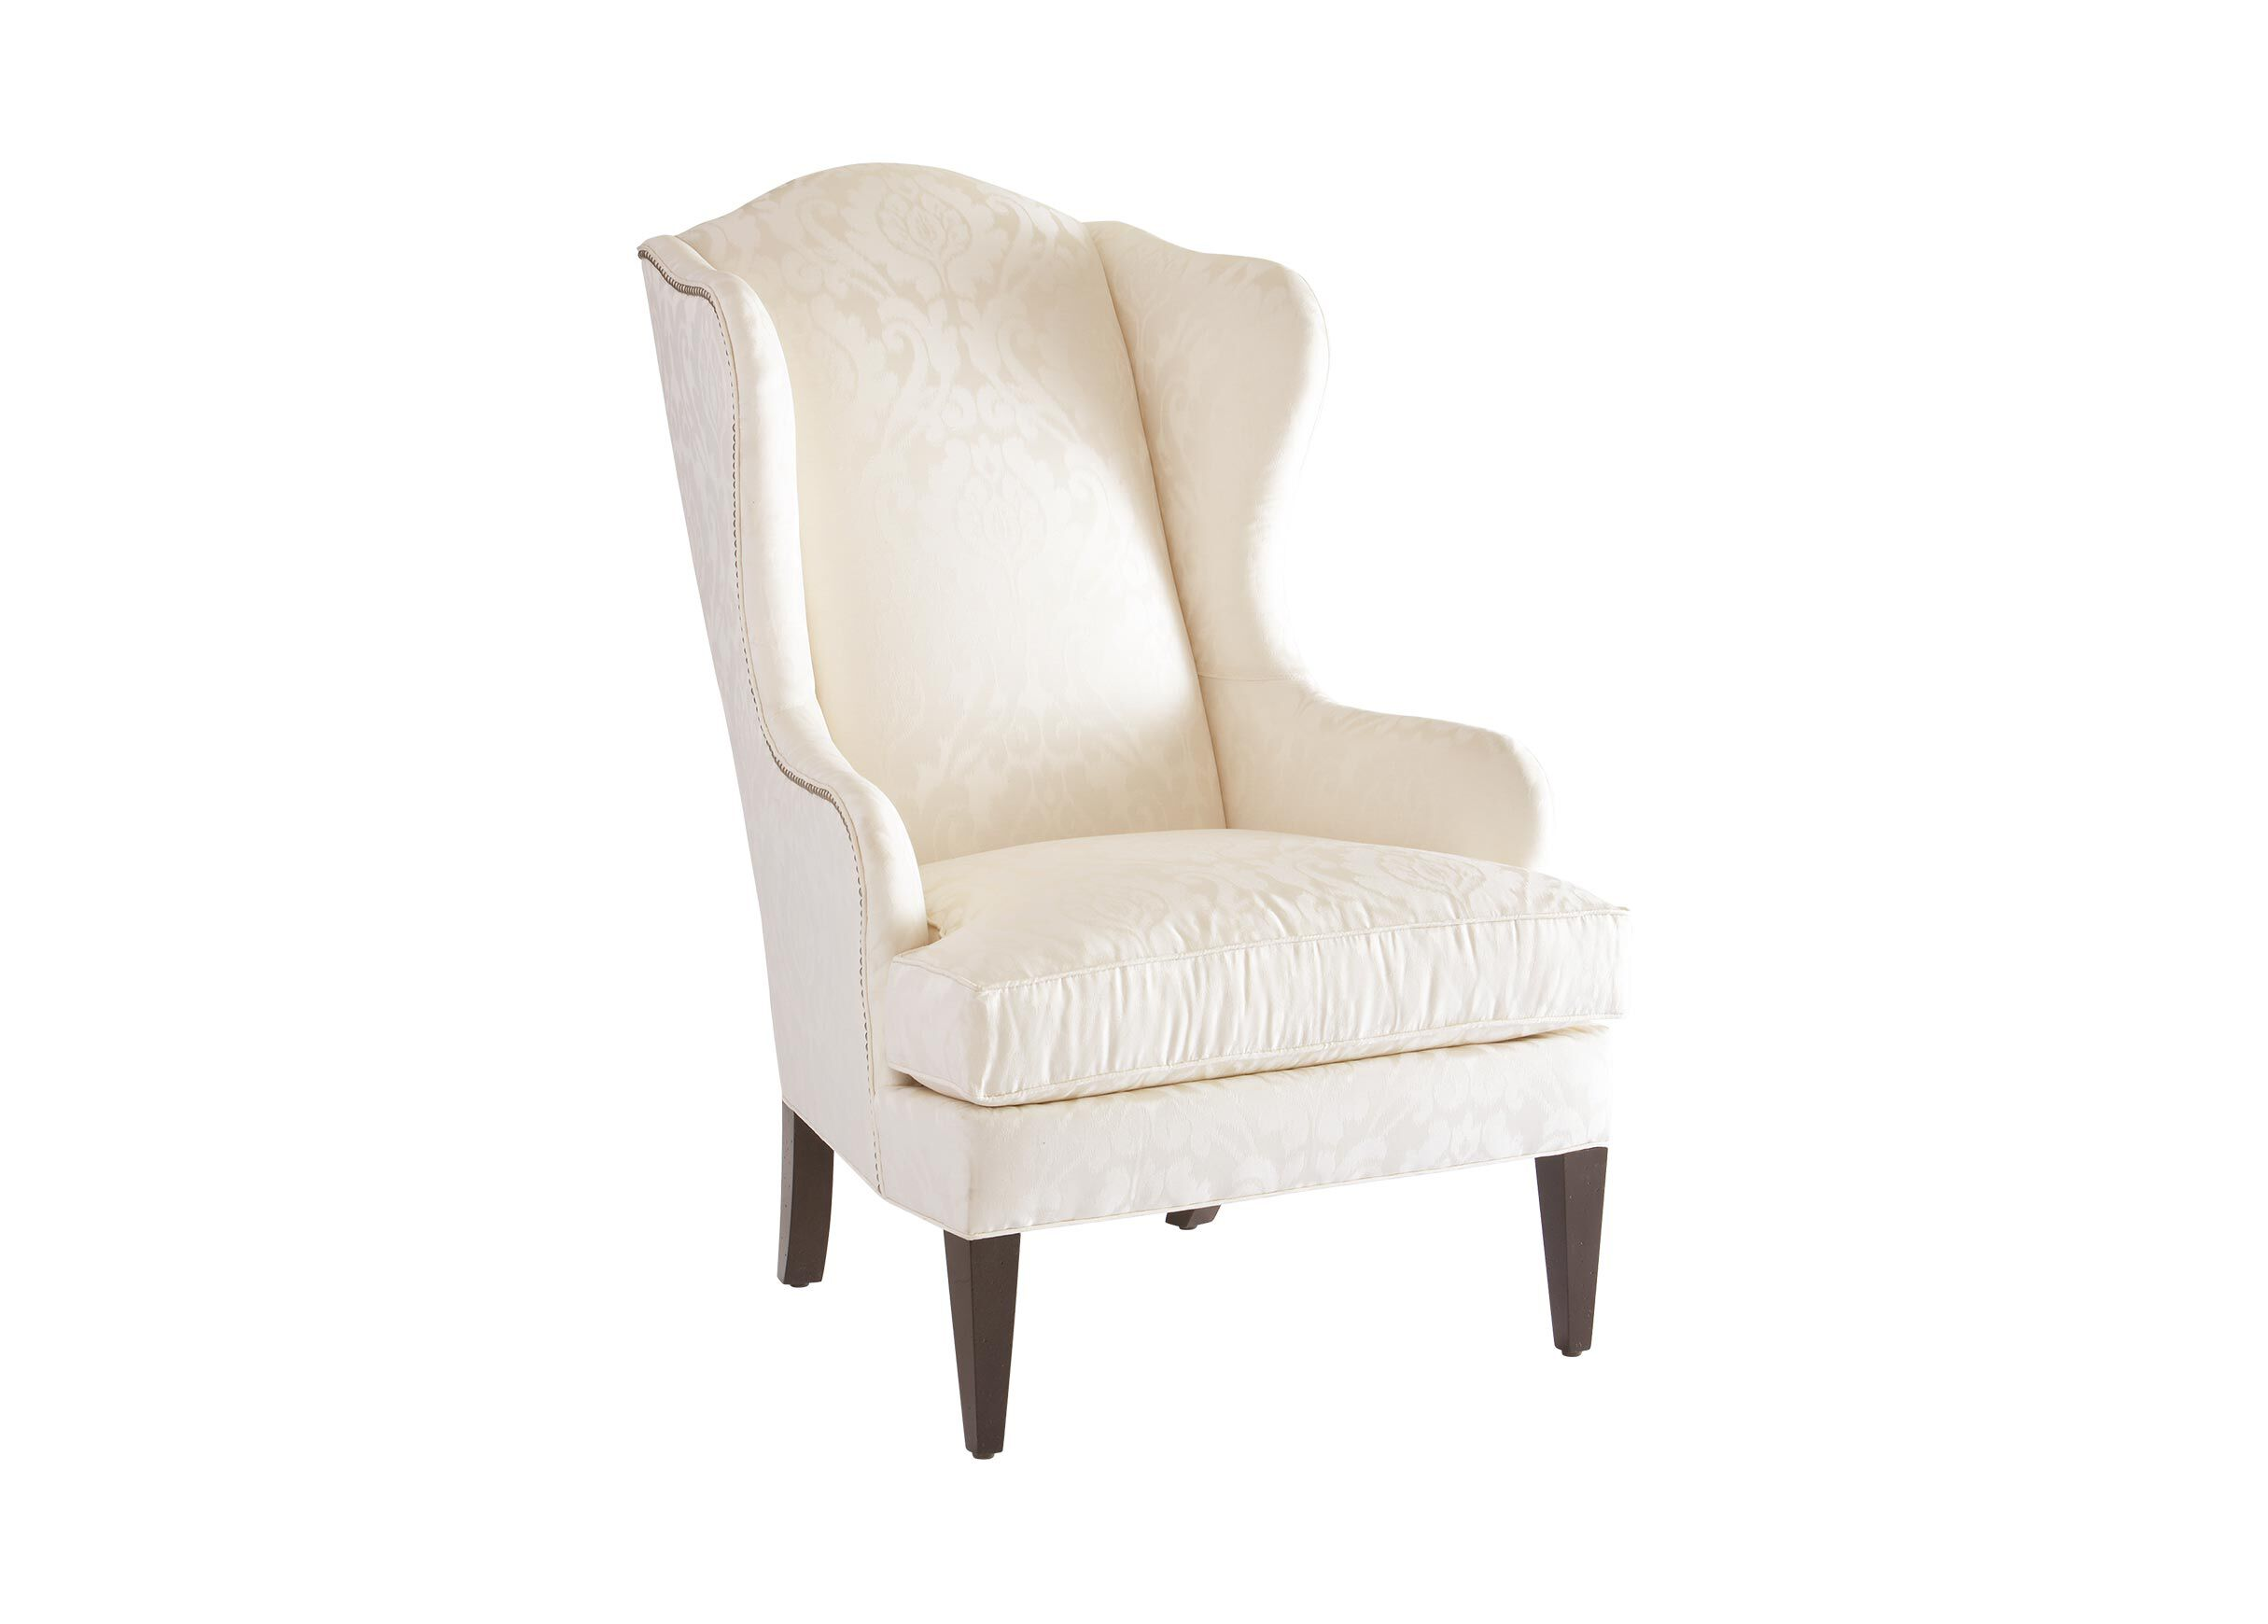 ethan allen wingback chairs garden chair cushion covers uk selby wing chaises 1